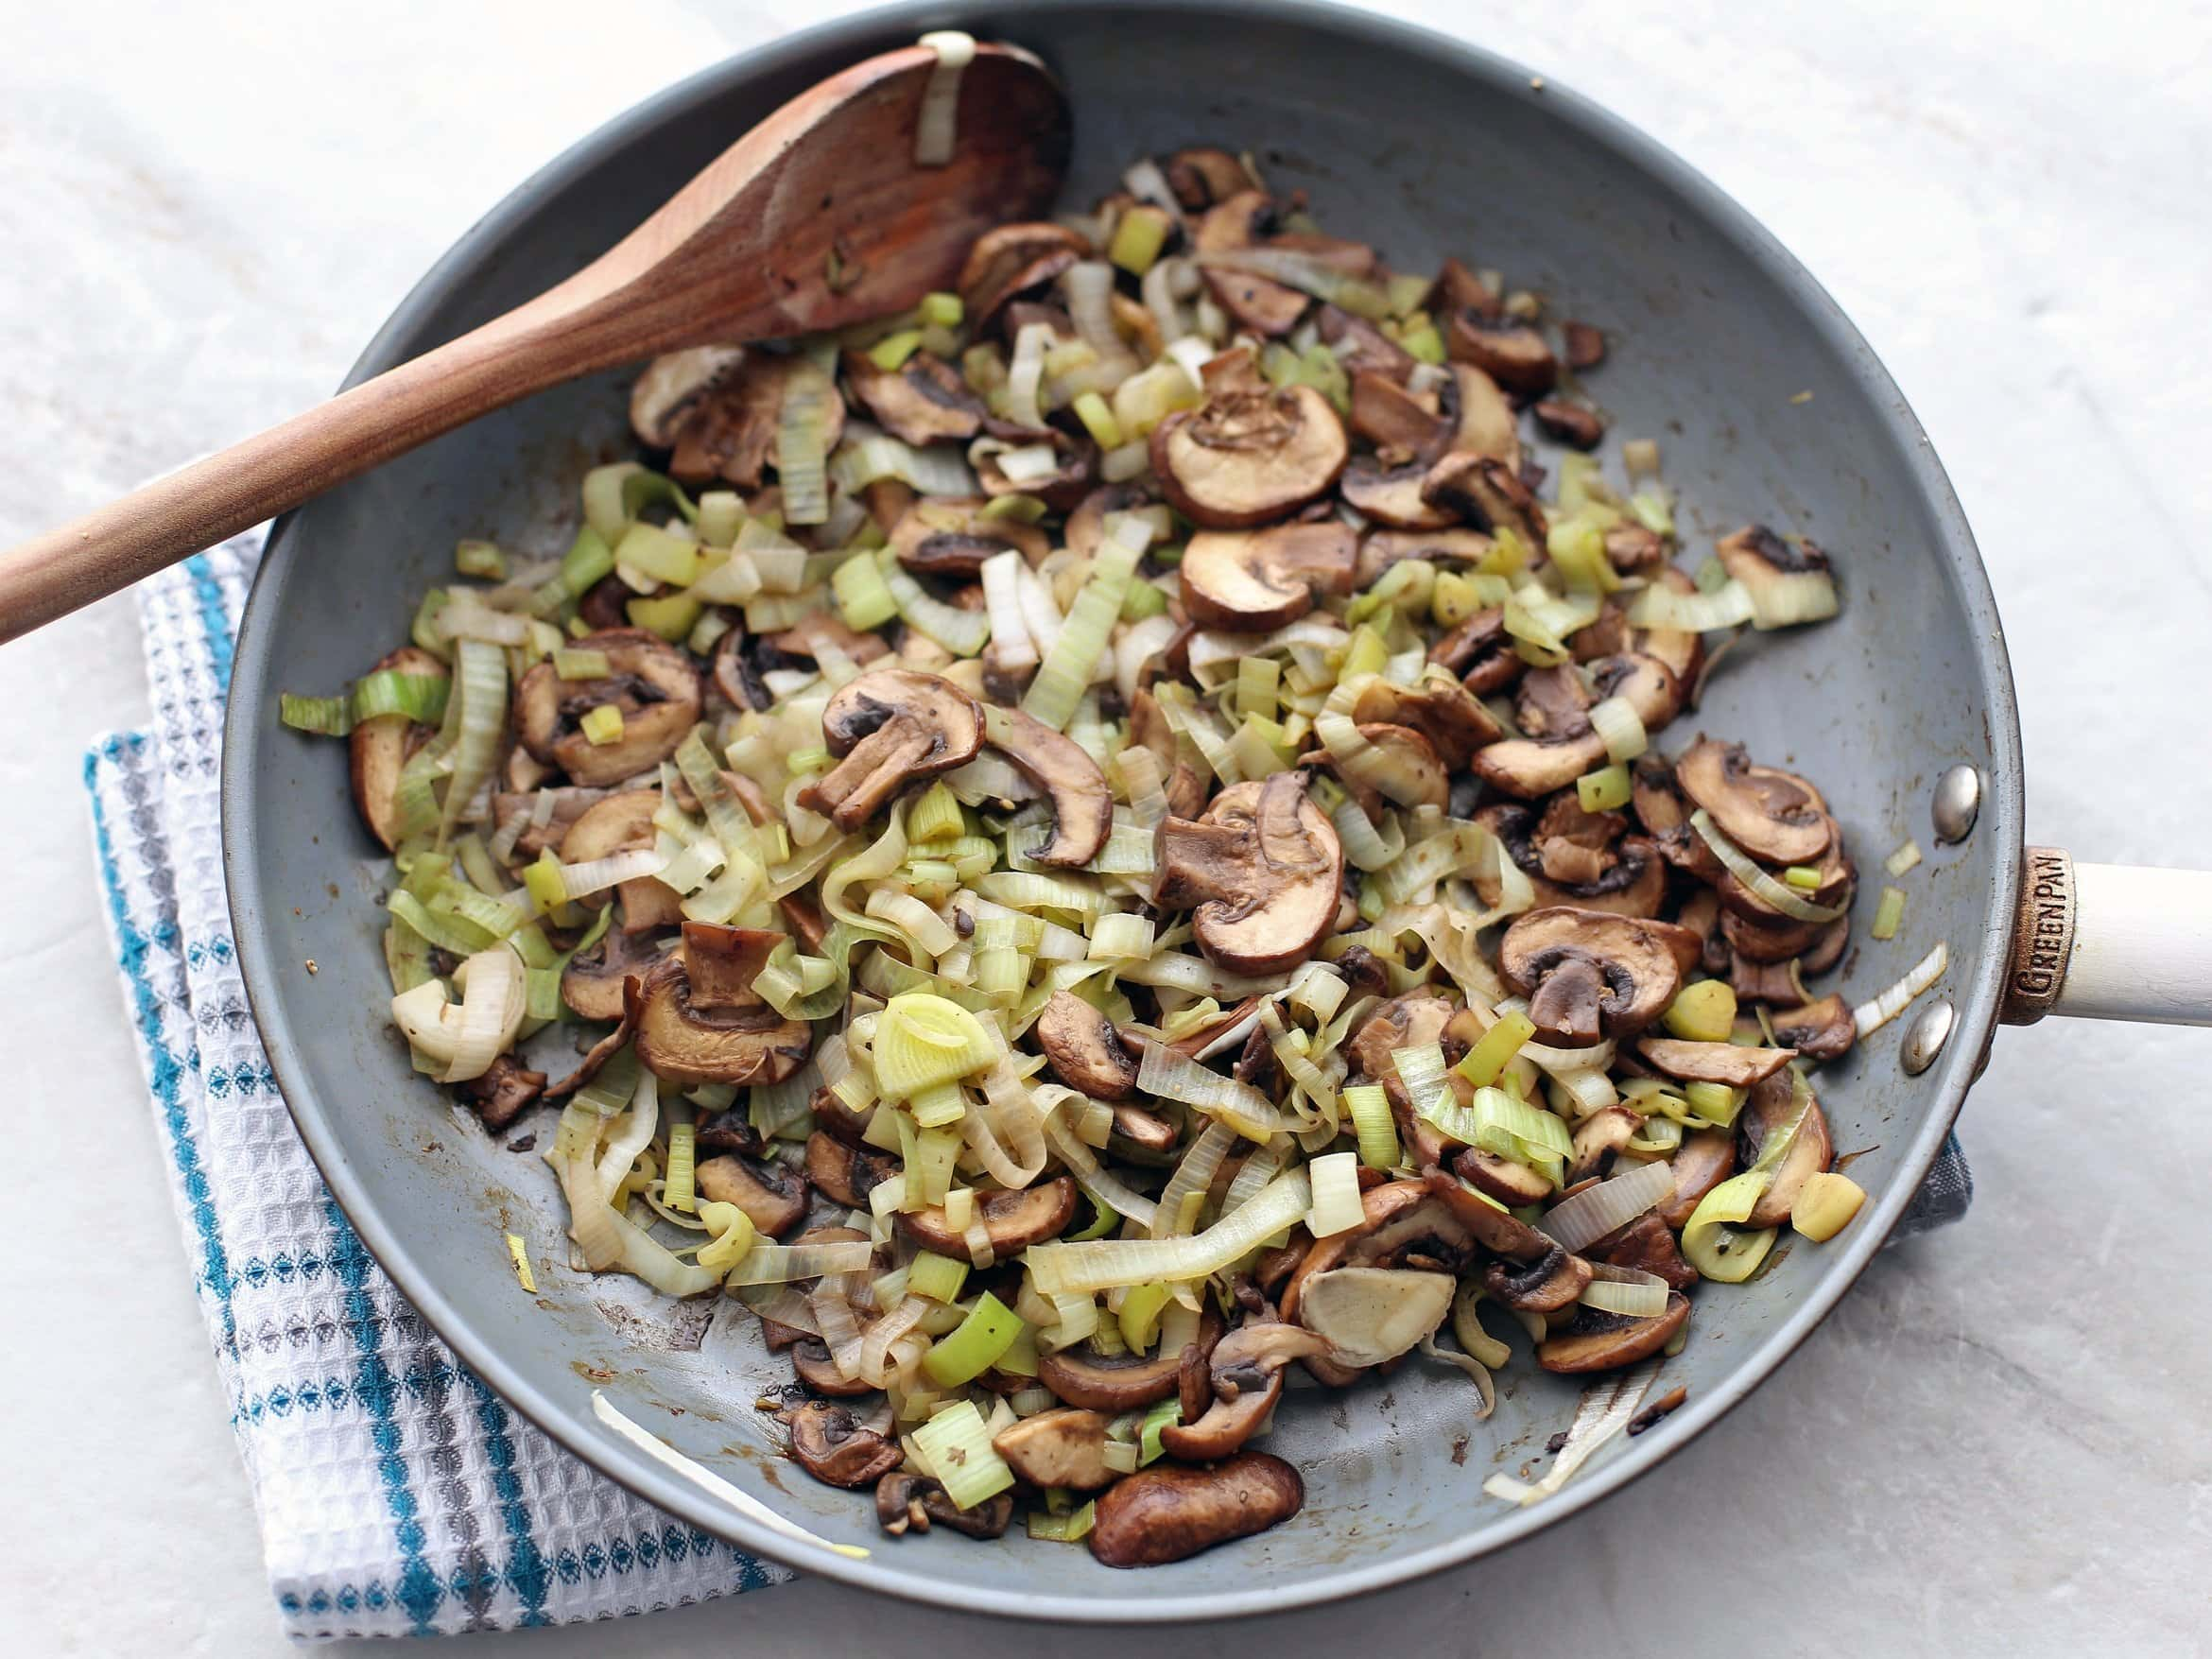 Sautéed leeks and muffins in a frying pan.